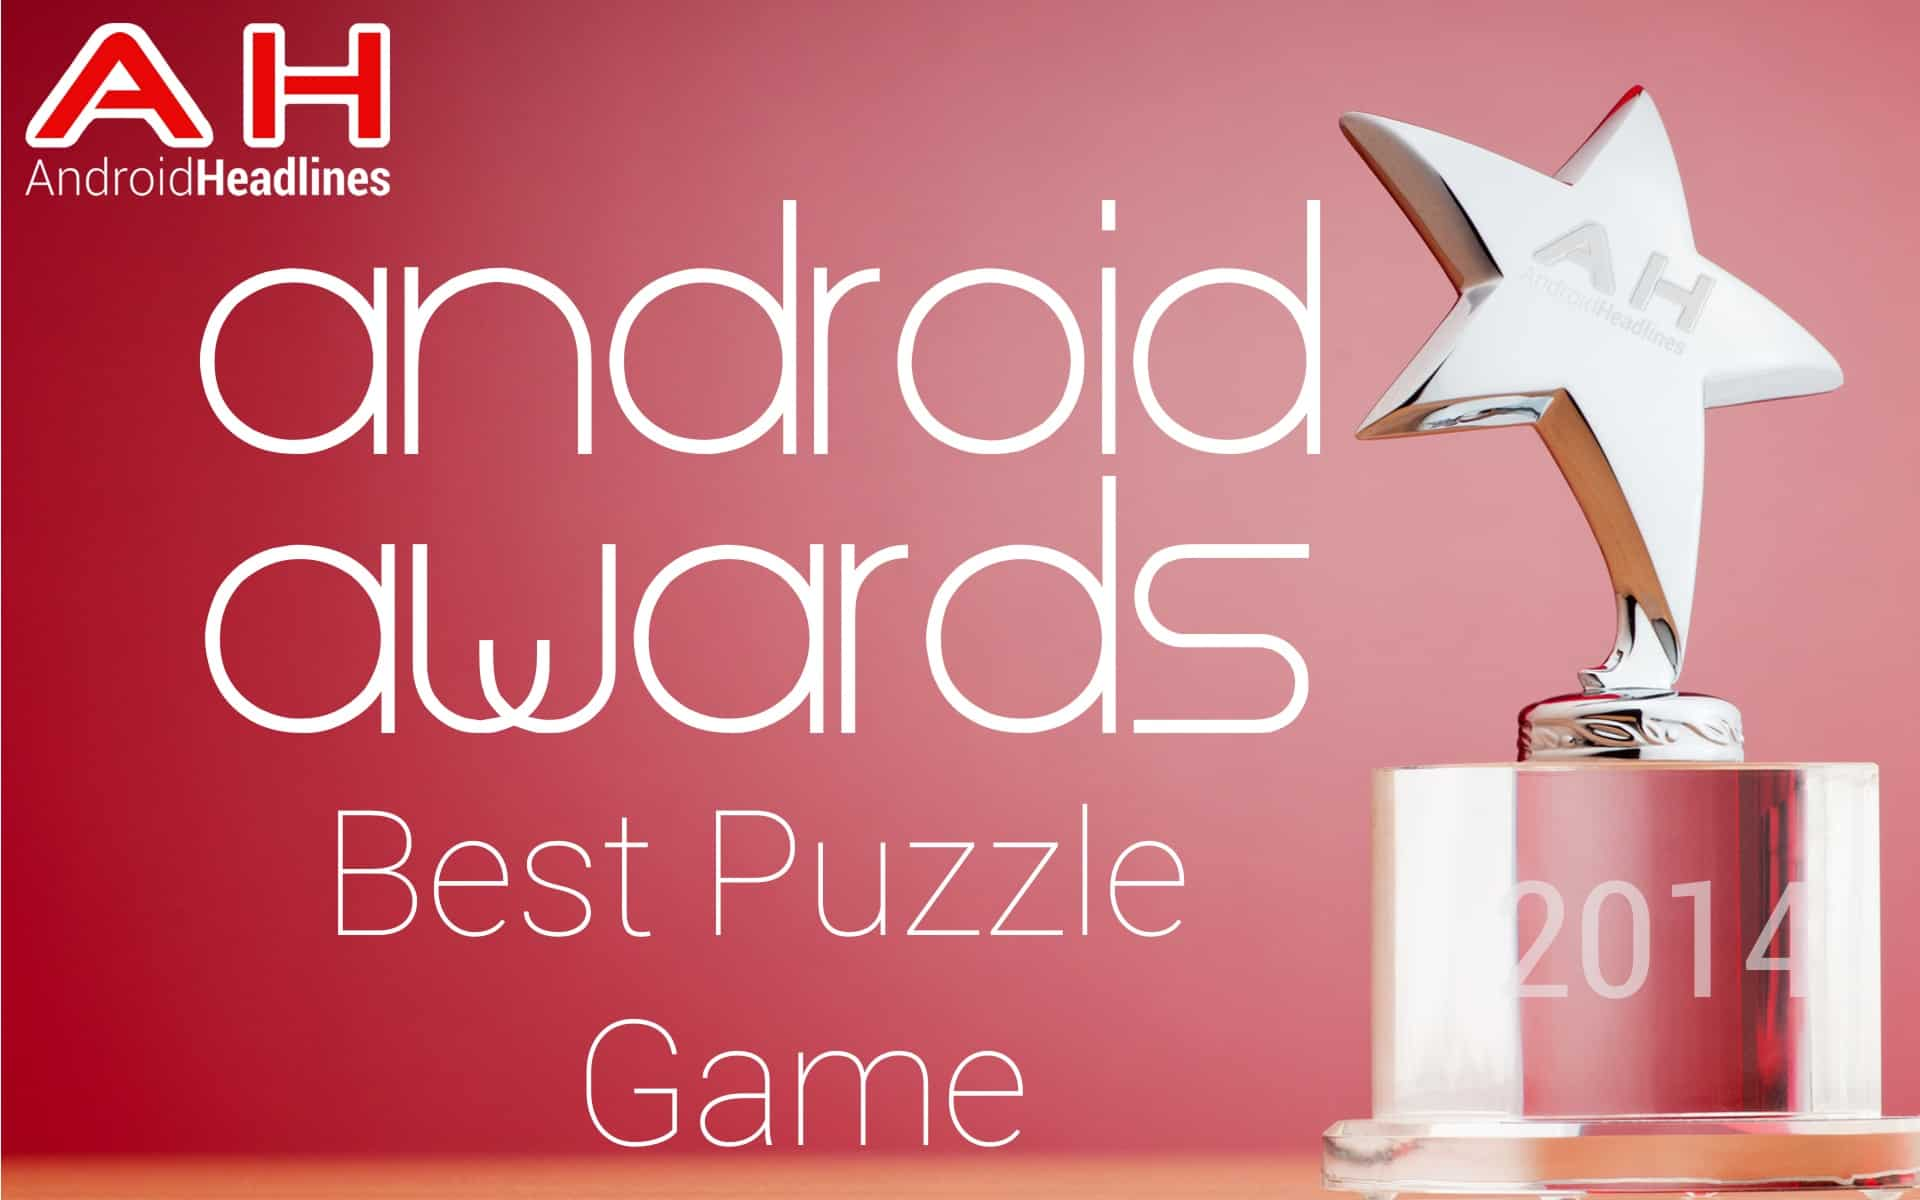 AH Awards 2015 Best Puzzle Game Android